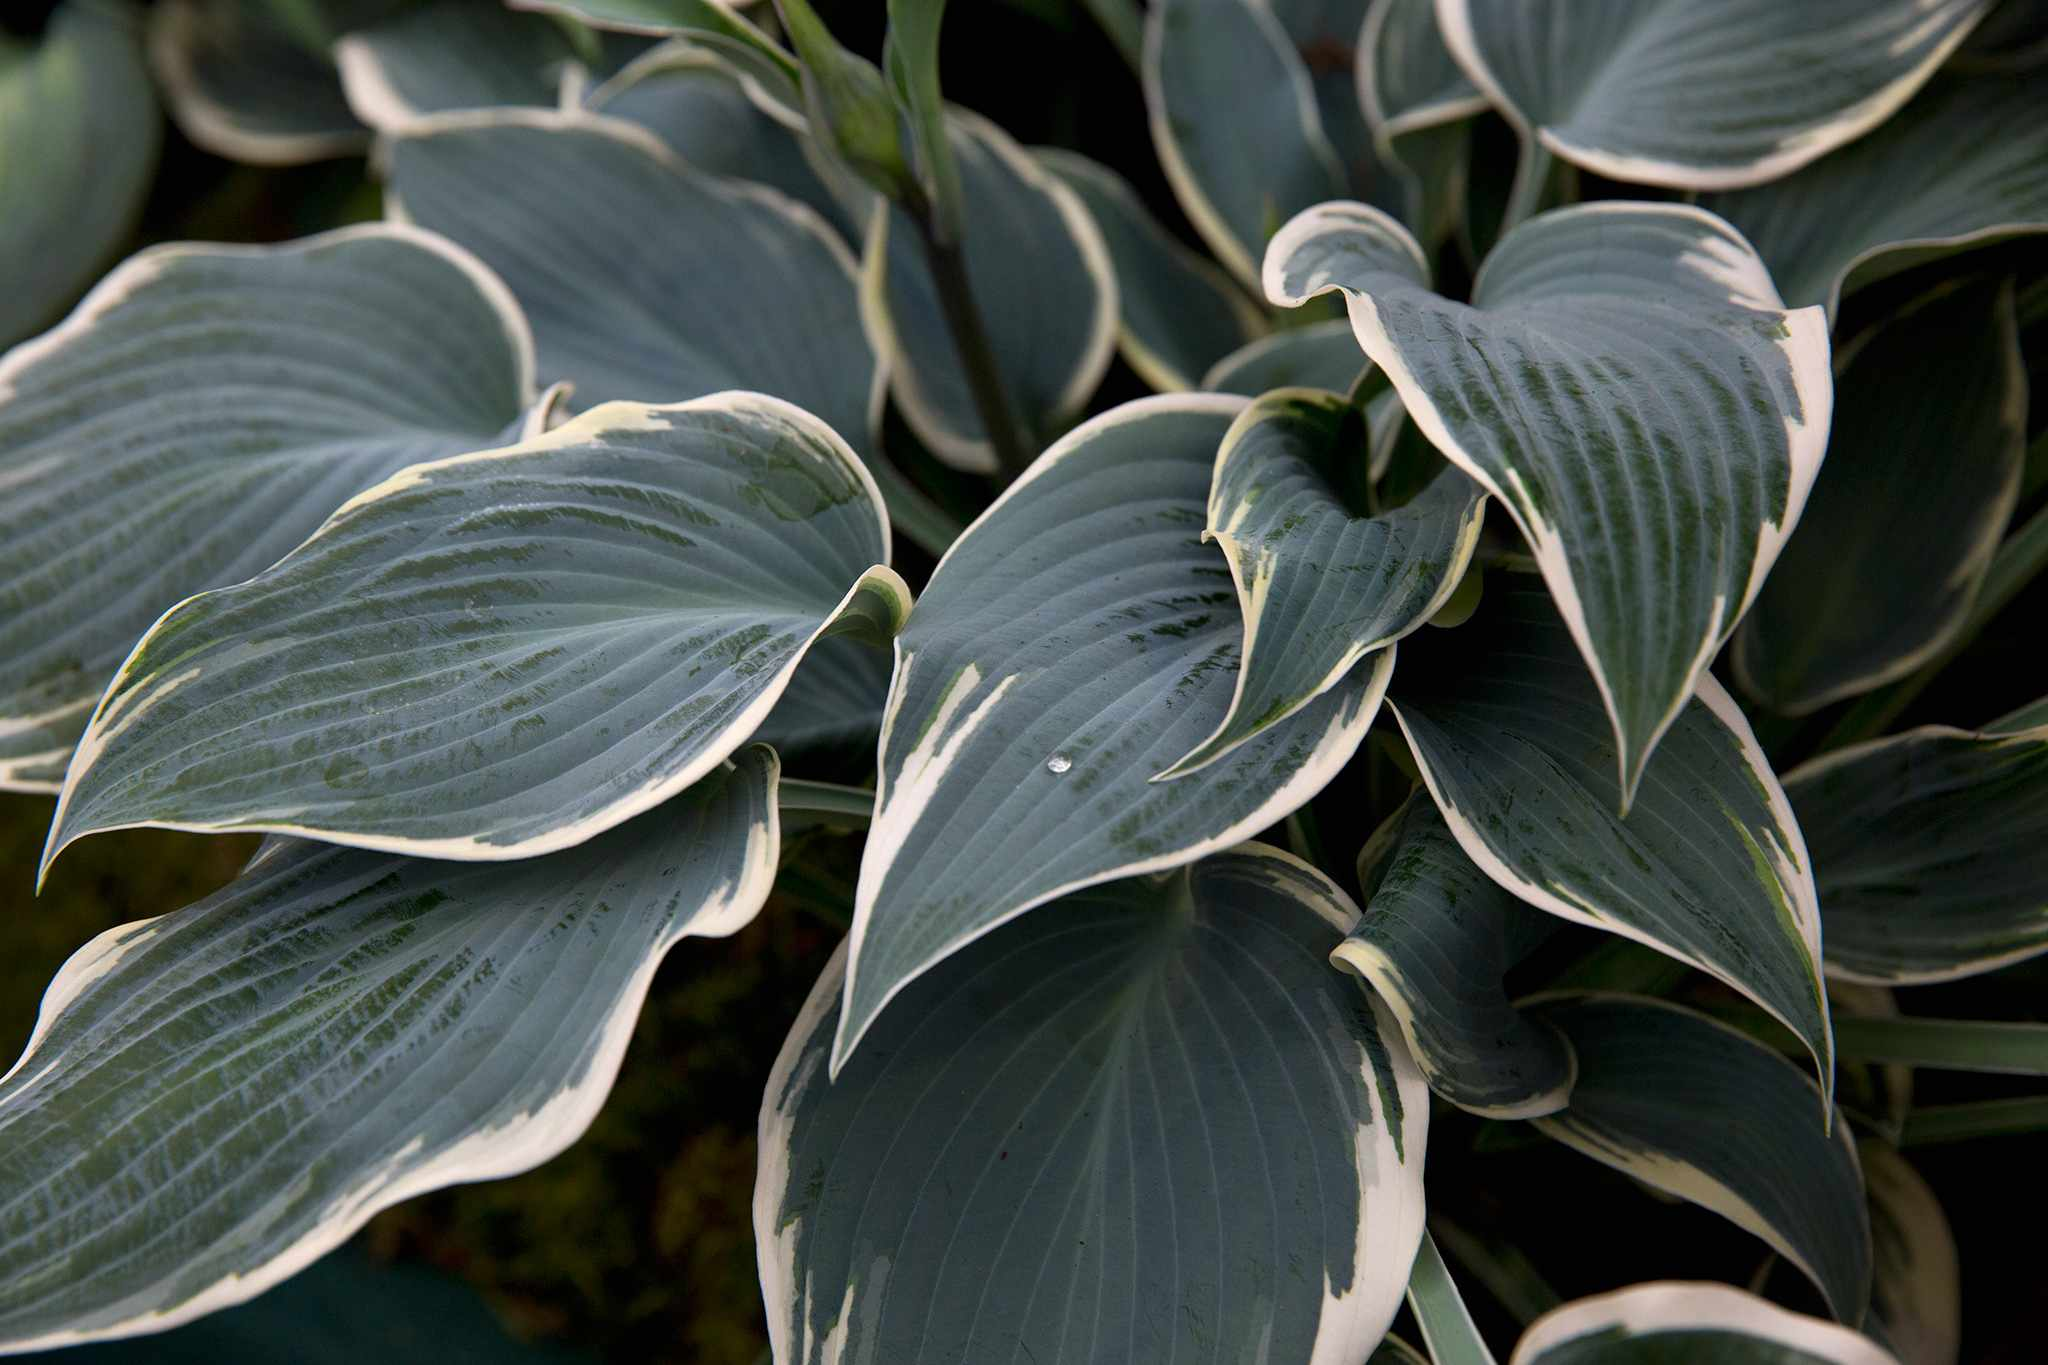 Dark green hosta foliage with pale yellow margins